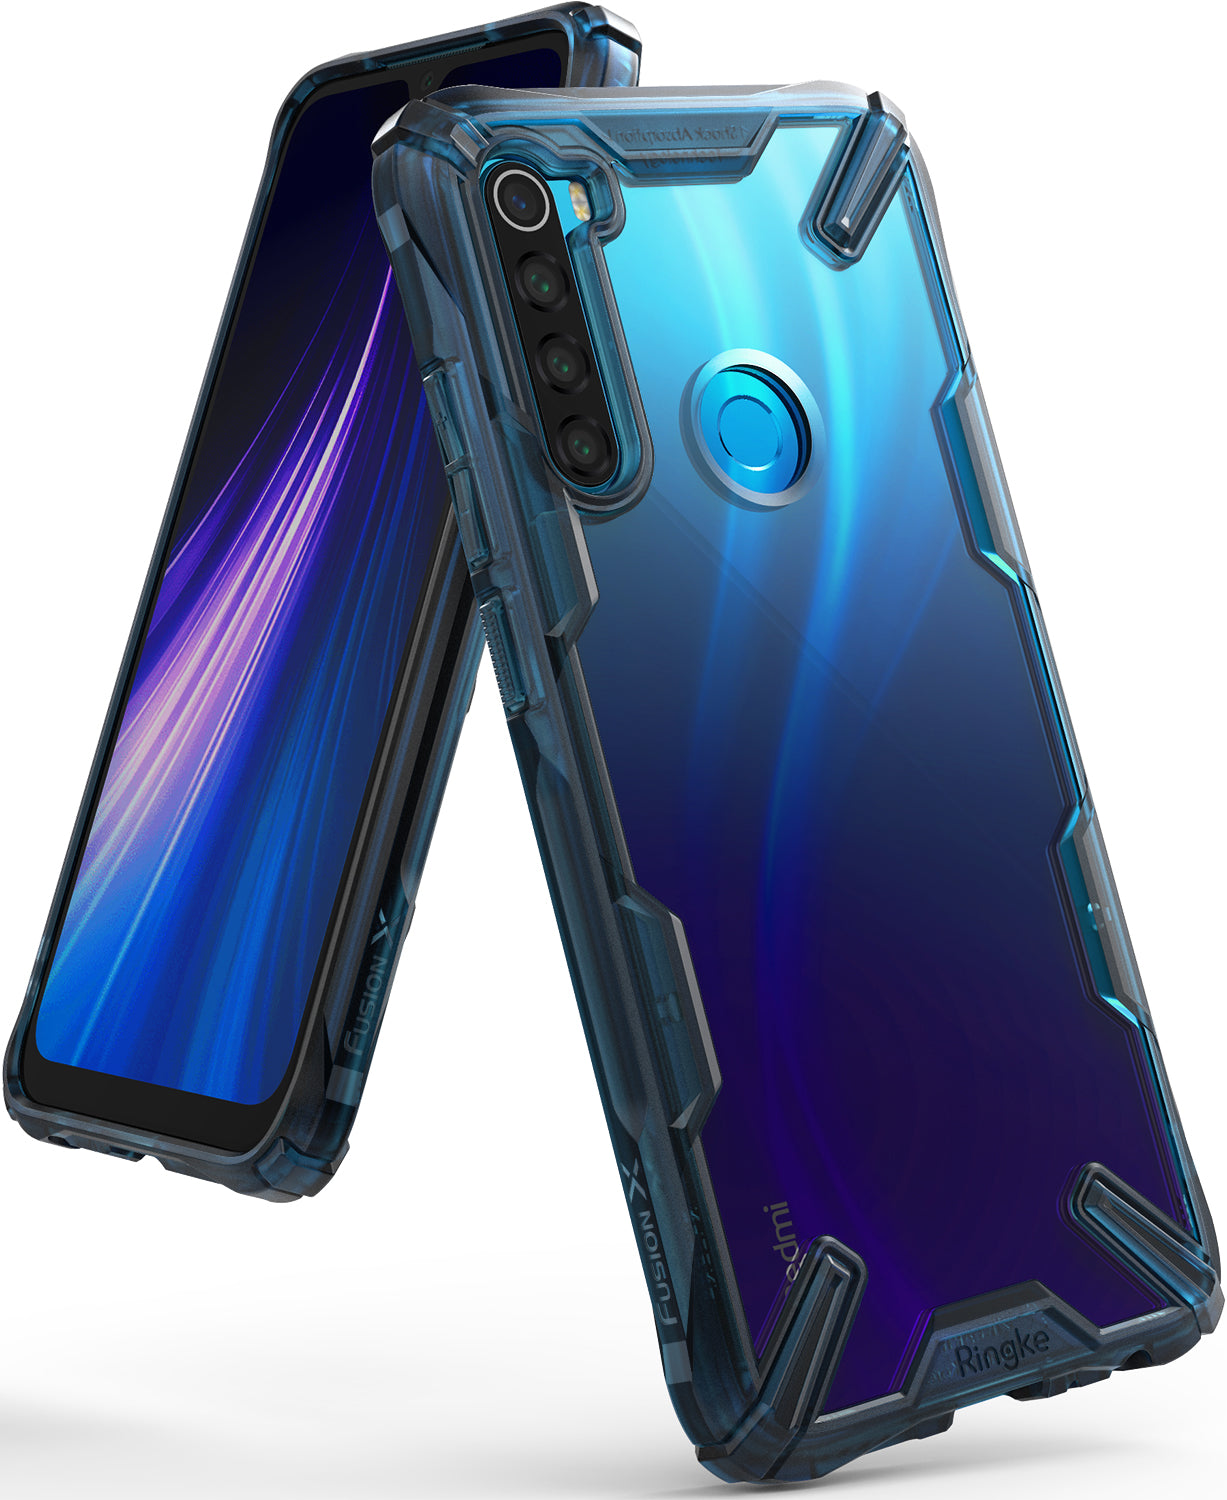 Ringke FUSION-X Design Case for Xiaomi Redmi Note 8 (2019) - space blue